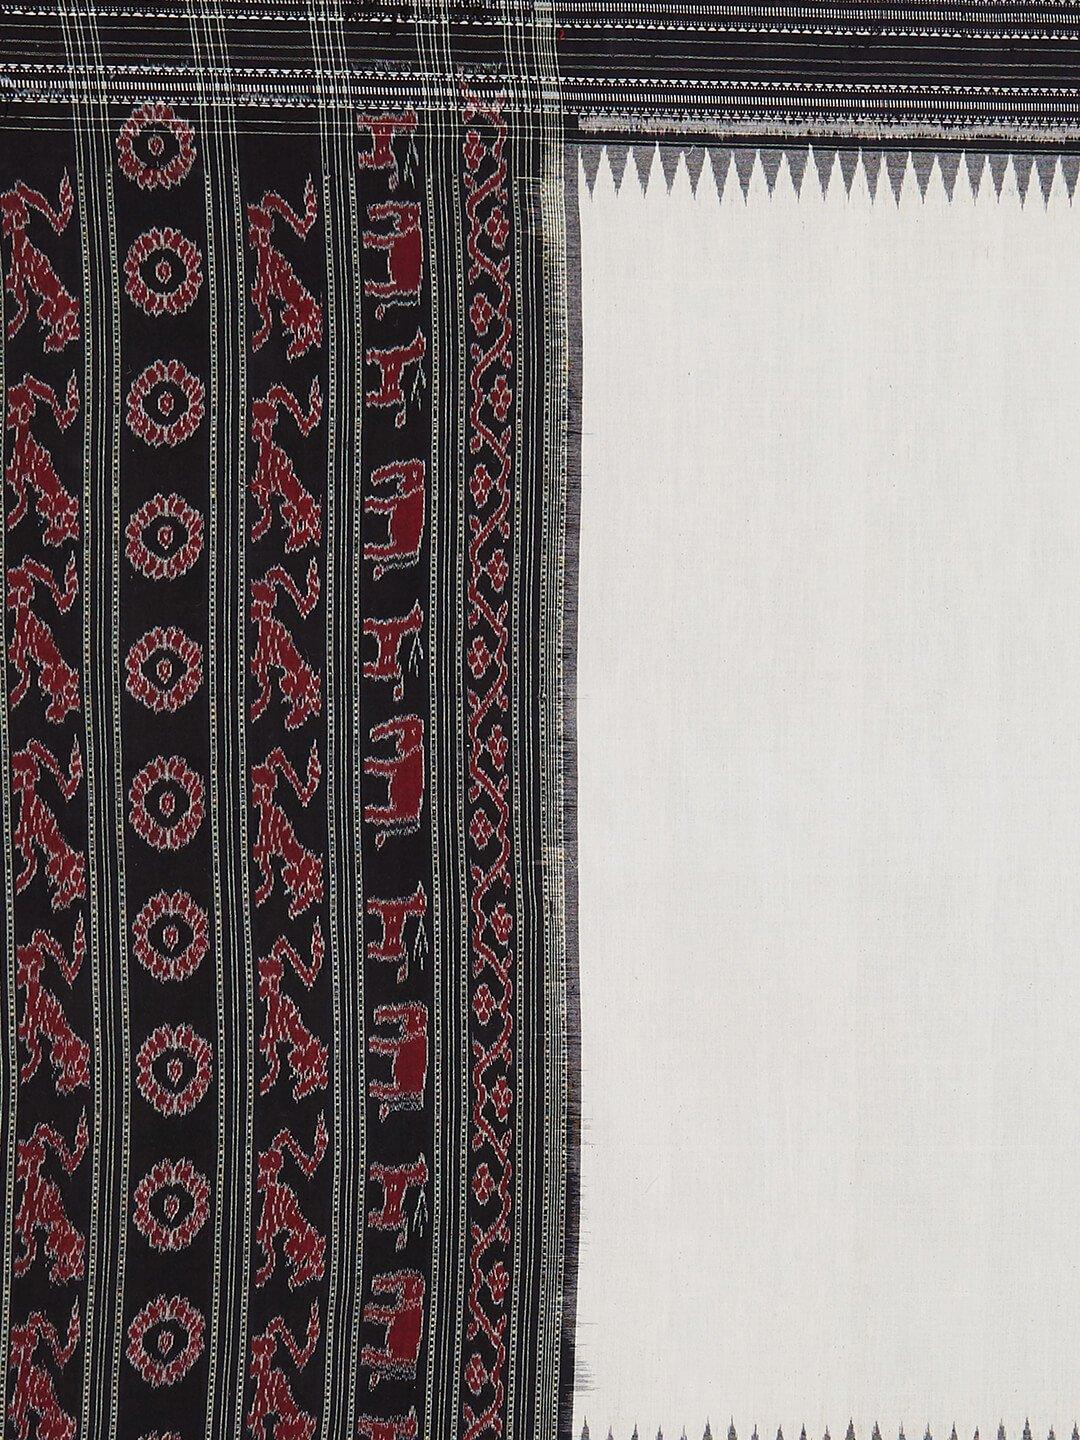 White and Black Cotton Sambalpuri  Dupatta